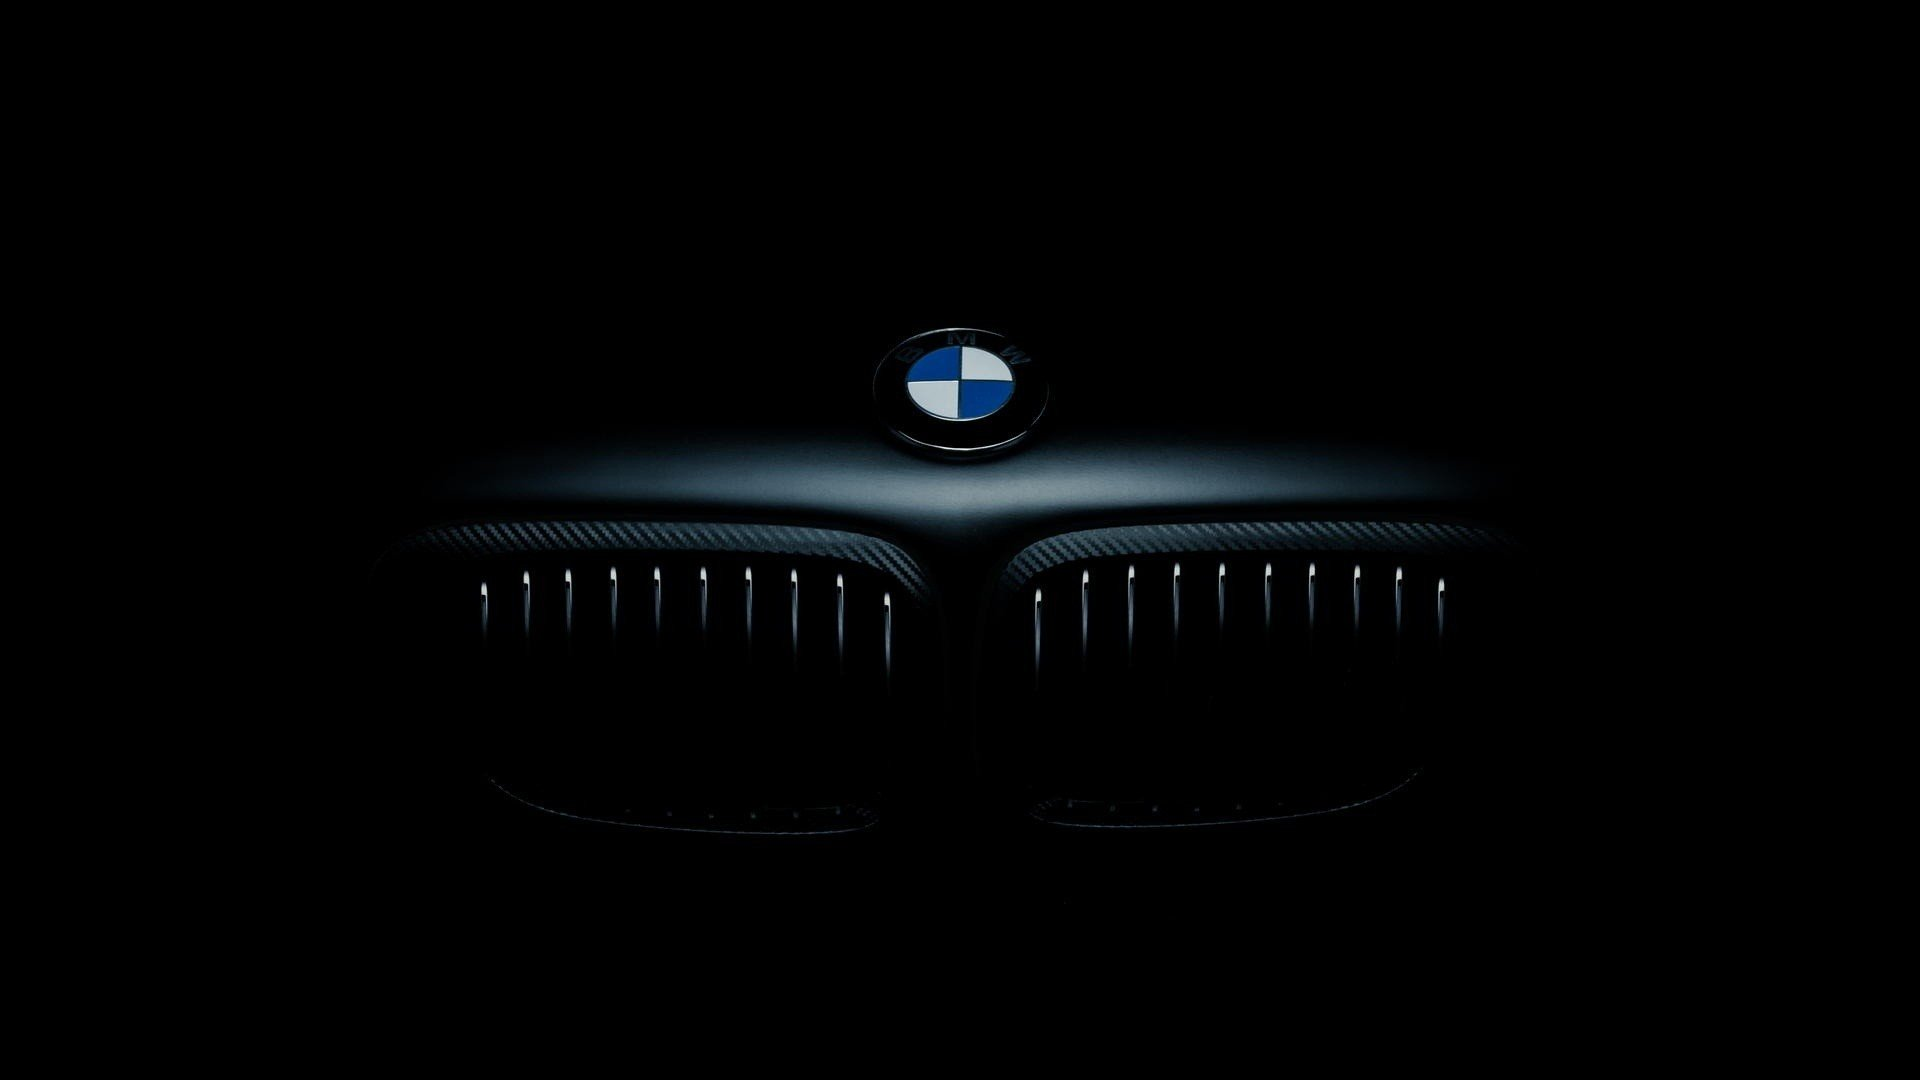 bmw wallpaper logo hd